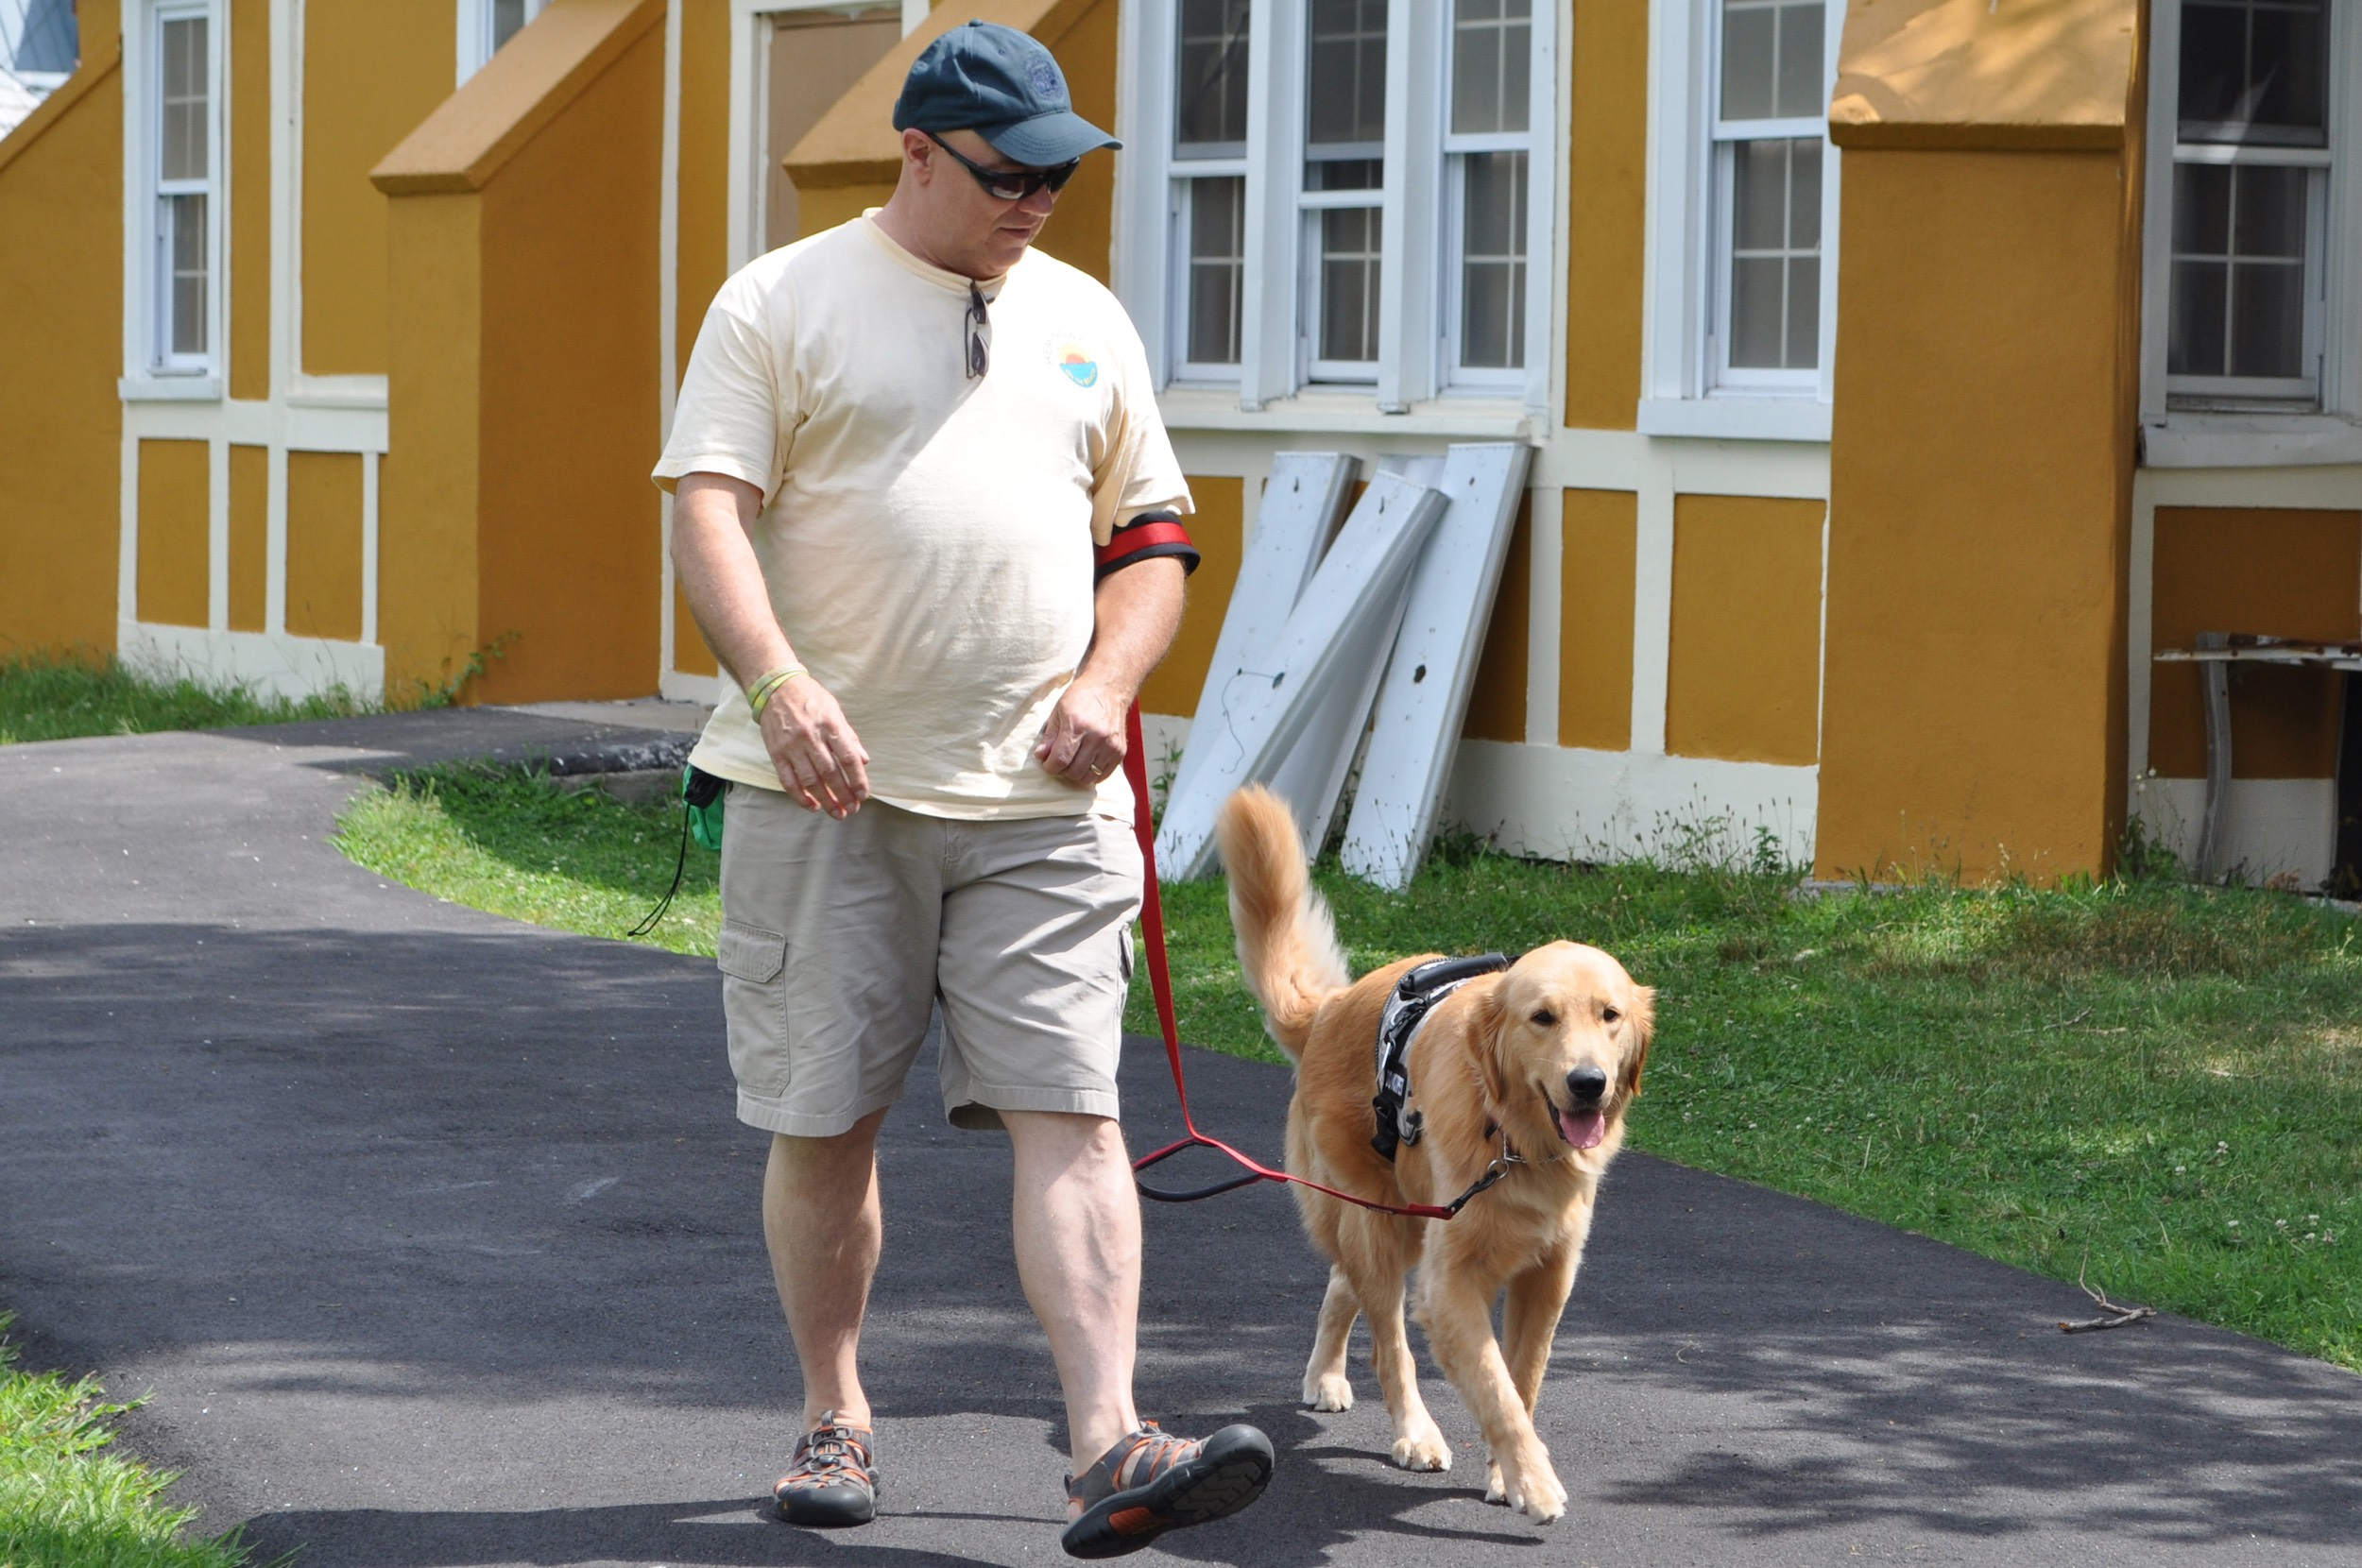 PTSD Service Dog for Veterans Walking